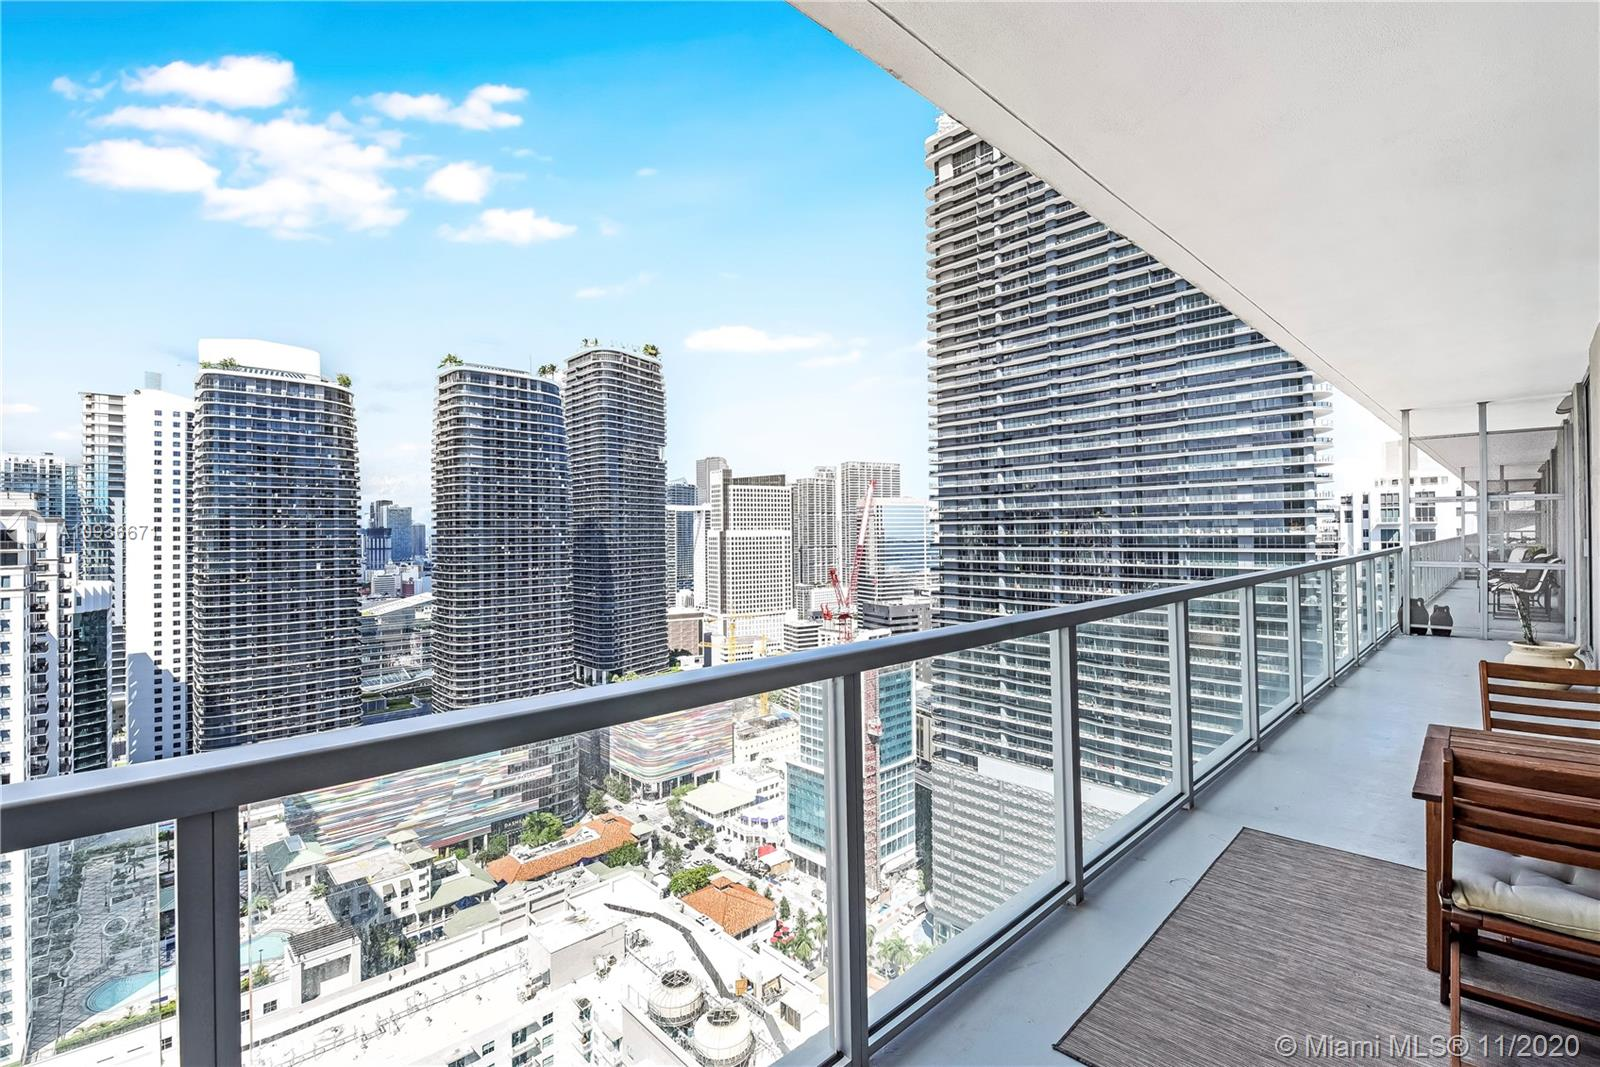 Axis on Brickell North Tower #3723-N - 1111 SW 1st Ave #3723-N, Miami, FL 33130